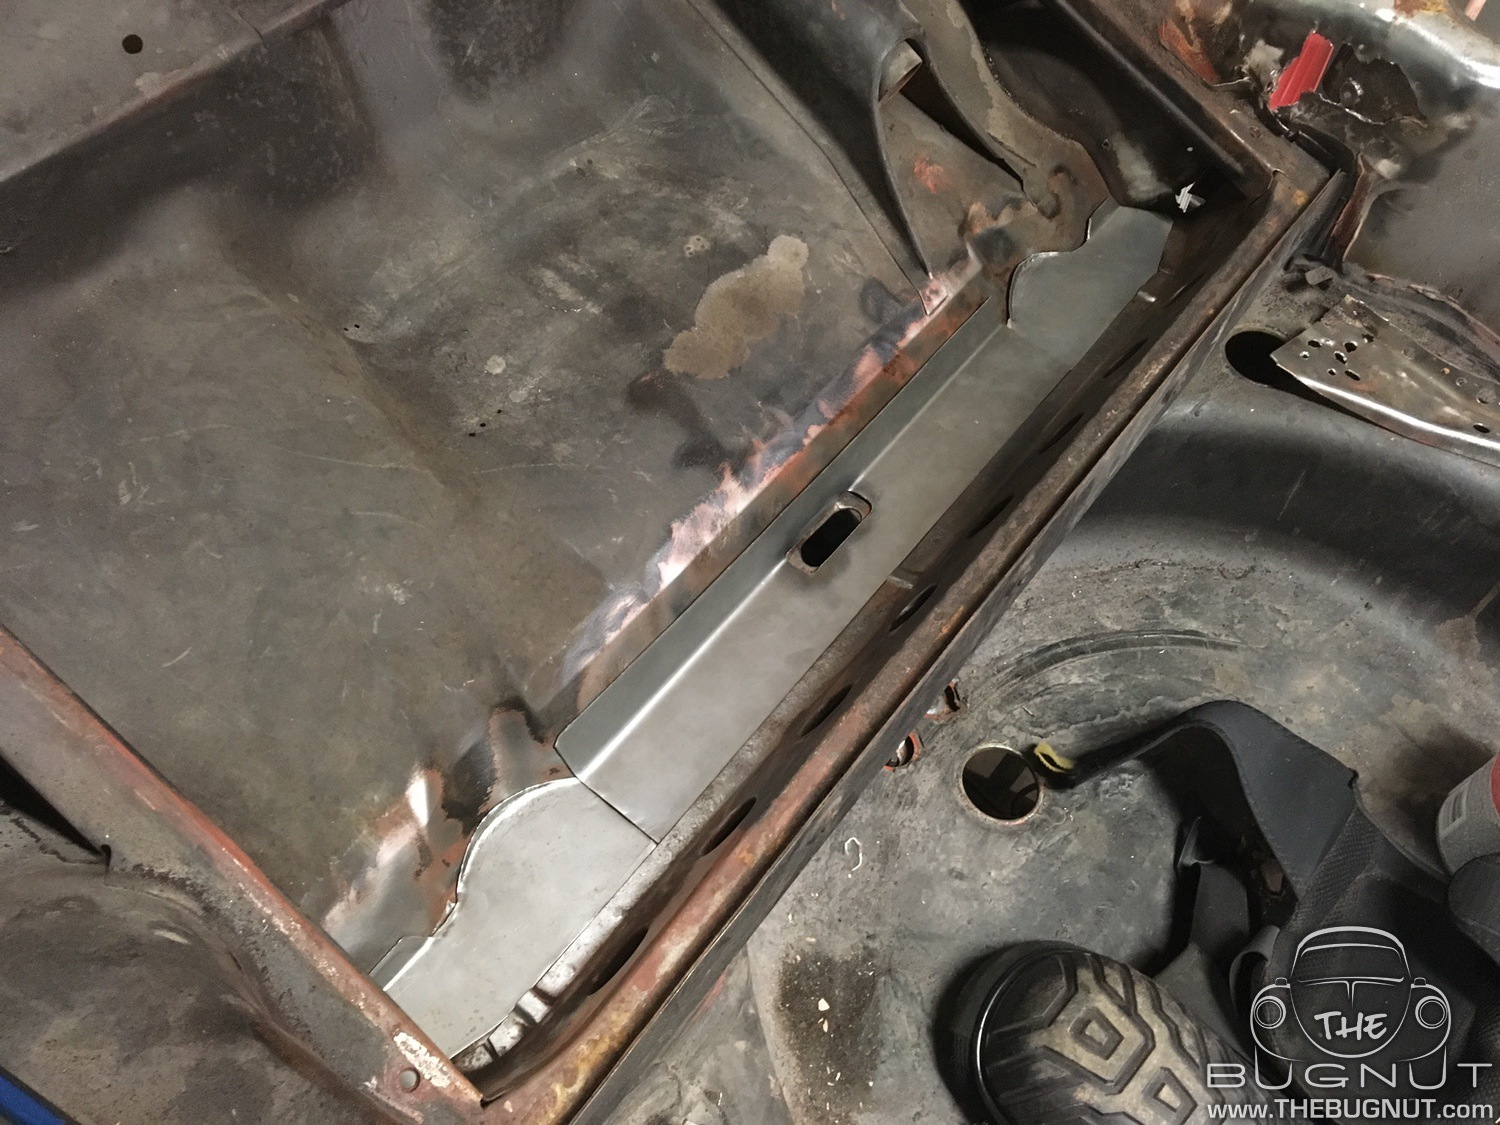 1971 Super Beetle Firewall and Gas Tank Repair